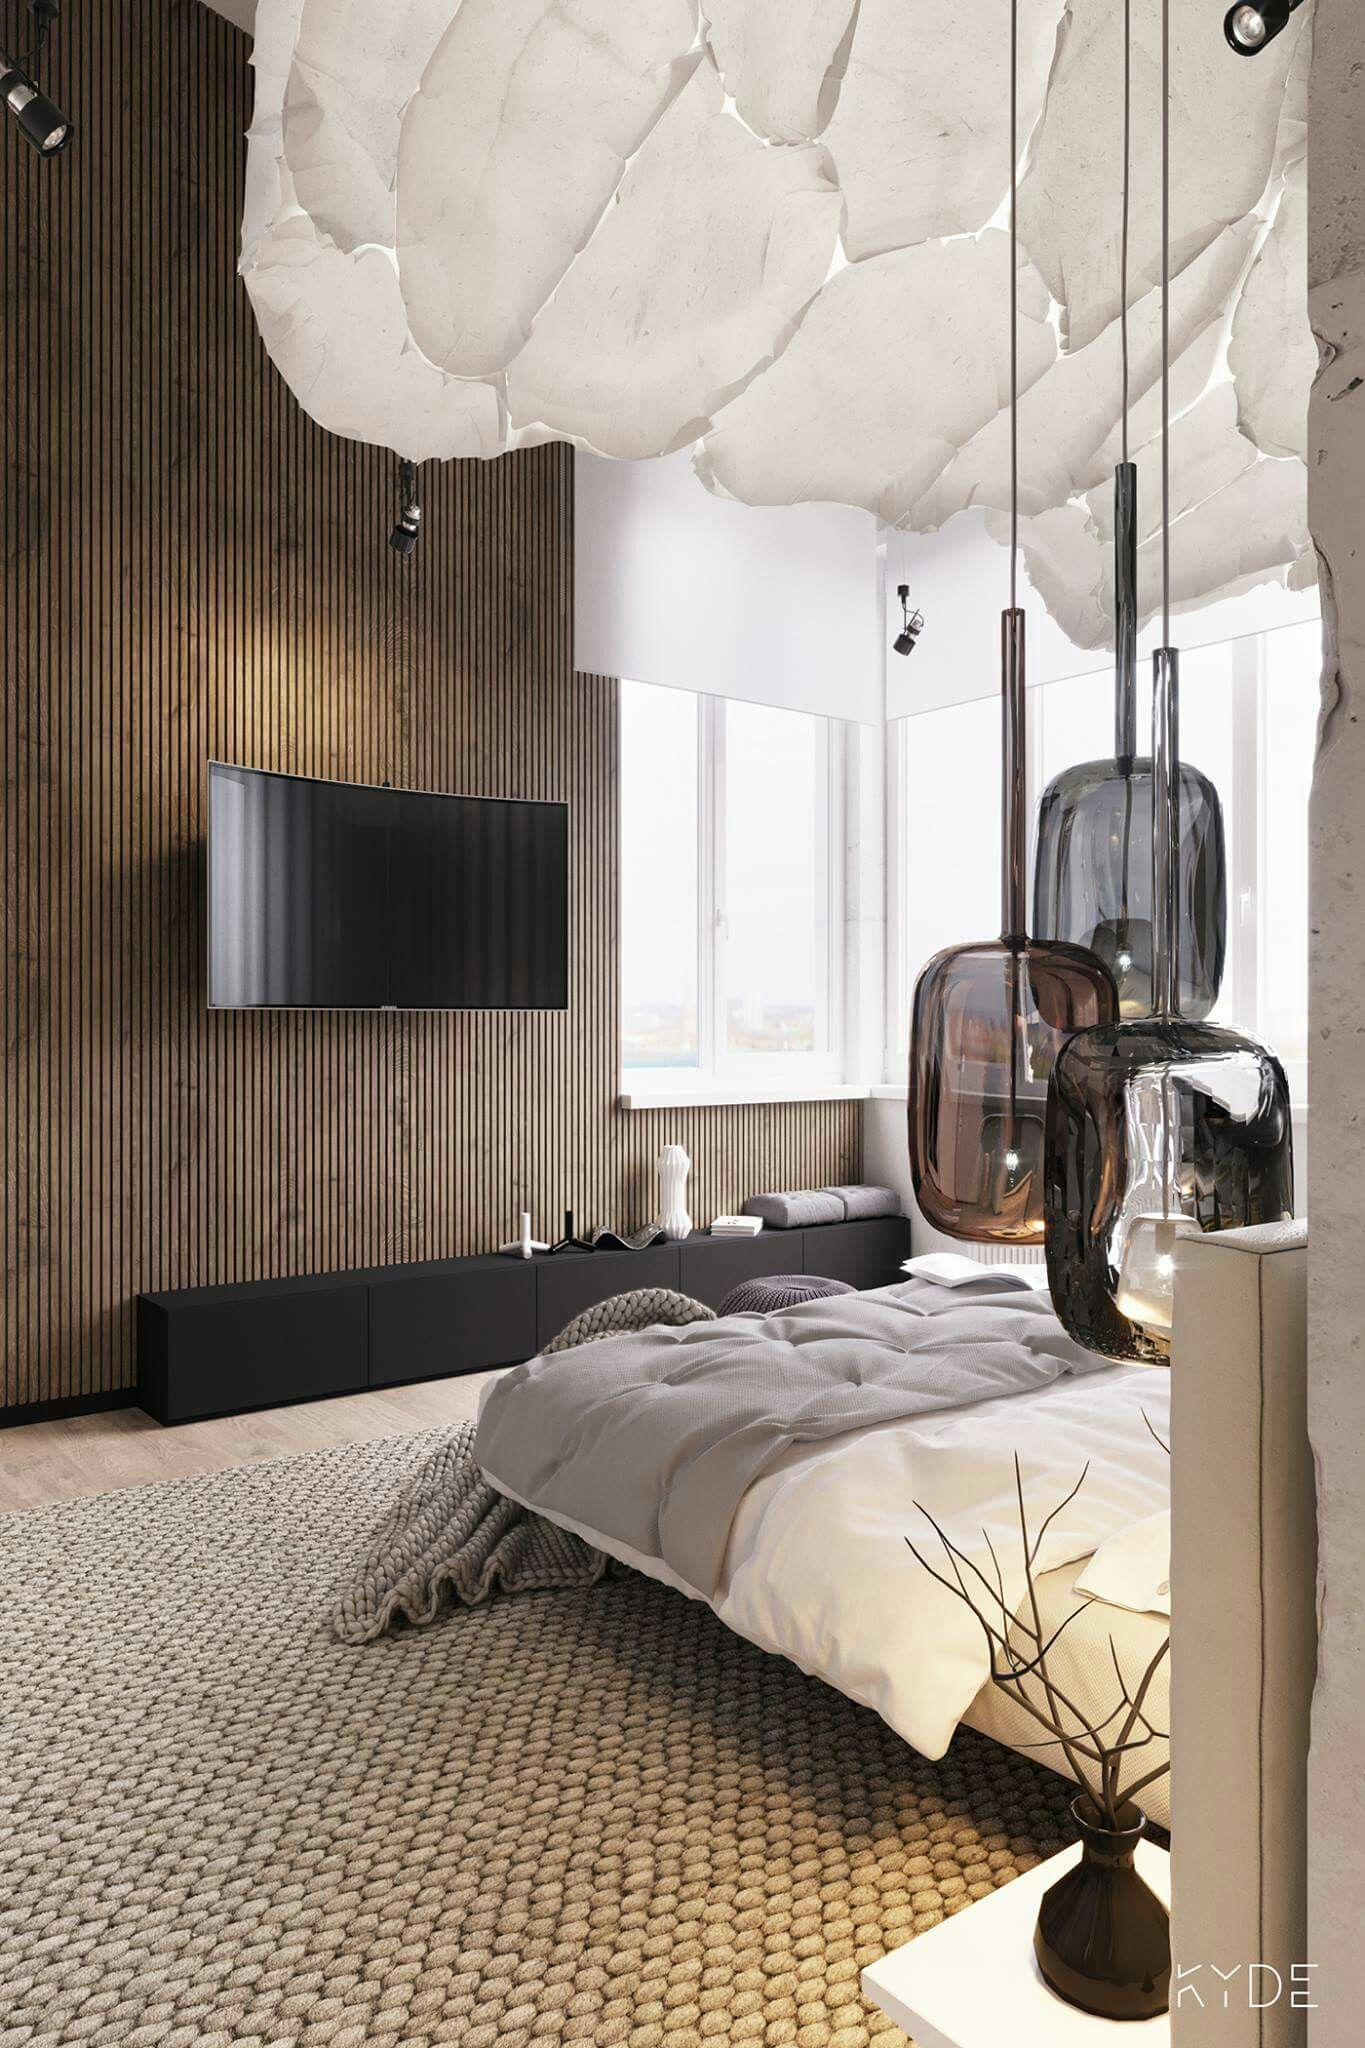 Hotel Room Designs: See More Luxury Luxury Hotel Lighting Inspirations At